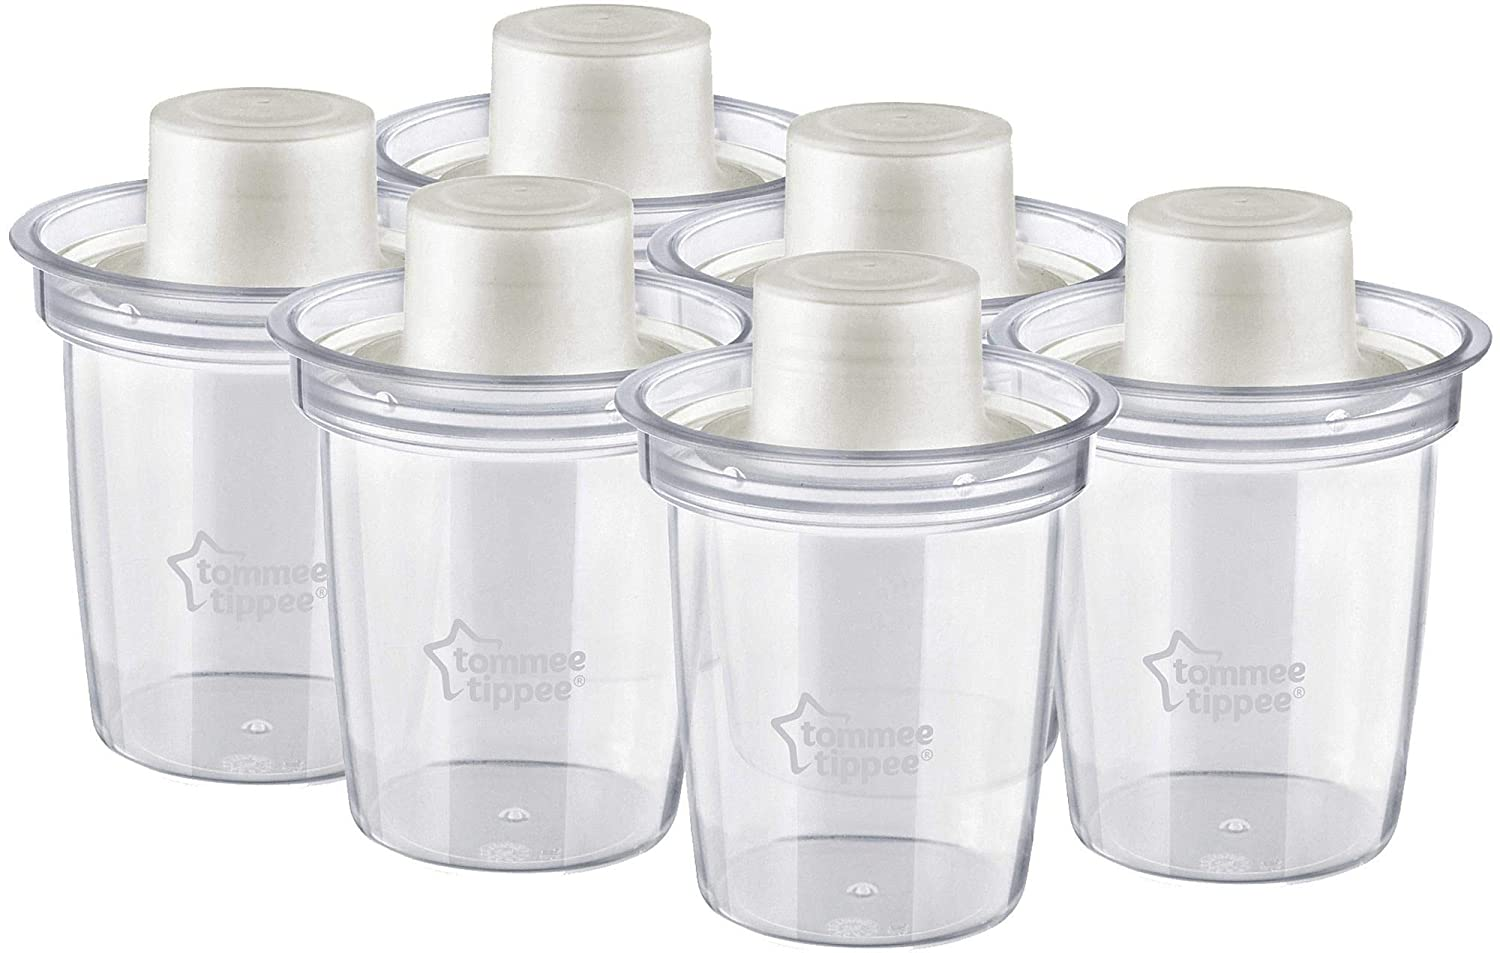 Tommee Tippee Closer to Nature Milk Powder Dispensers by Tommee Tippee 6-Pack